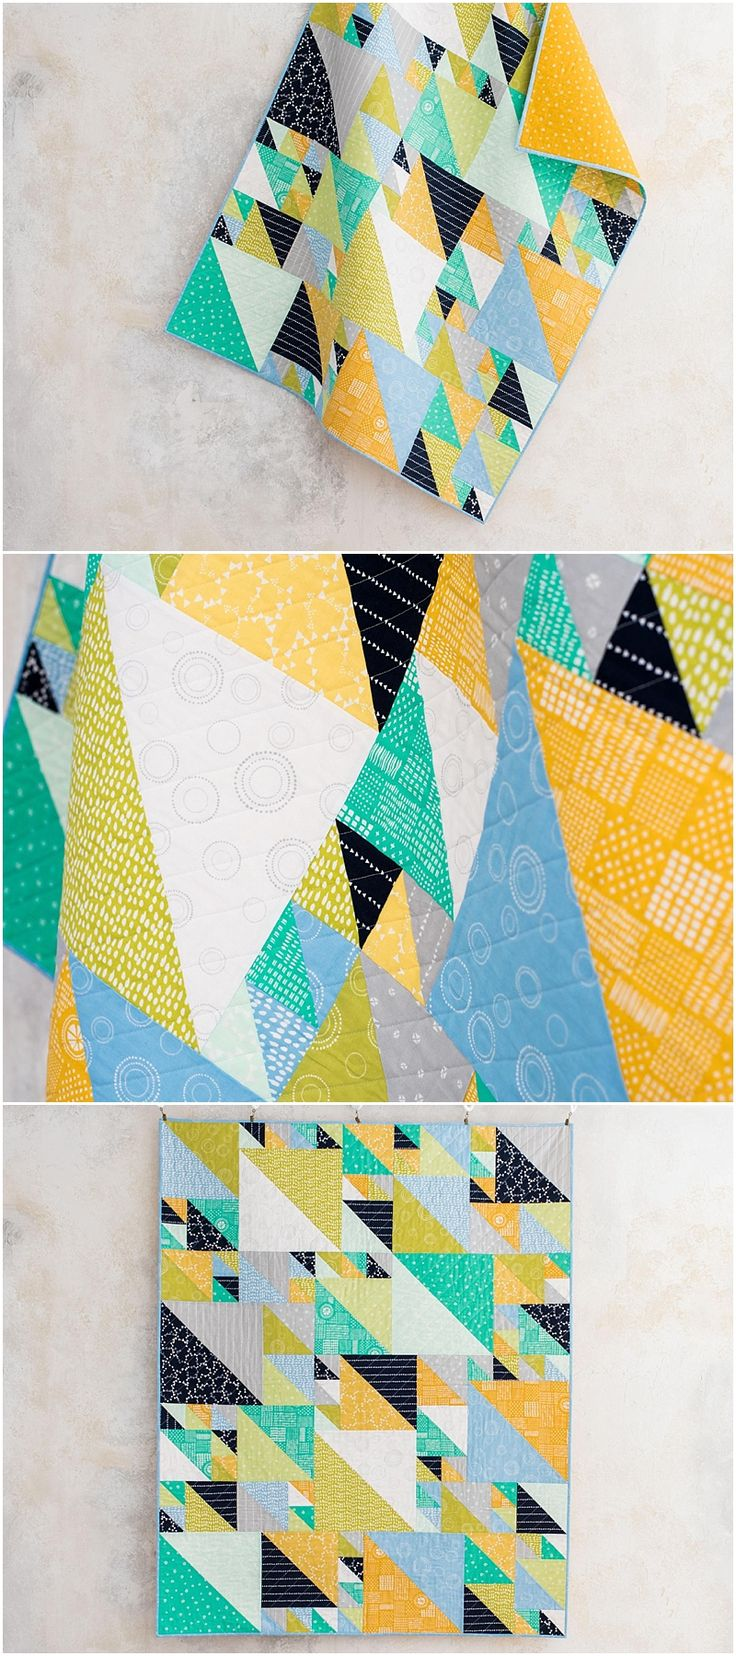 Landscape Quilt Patterns Kits : 1557 best Quilt Tutorials images on Pinterest Modern quilting, Contemporary quilts and ...